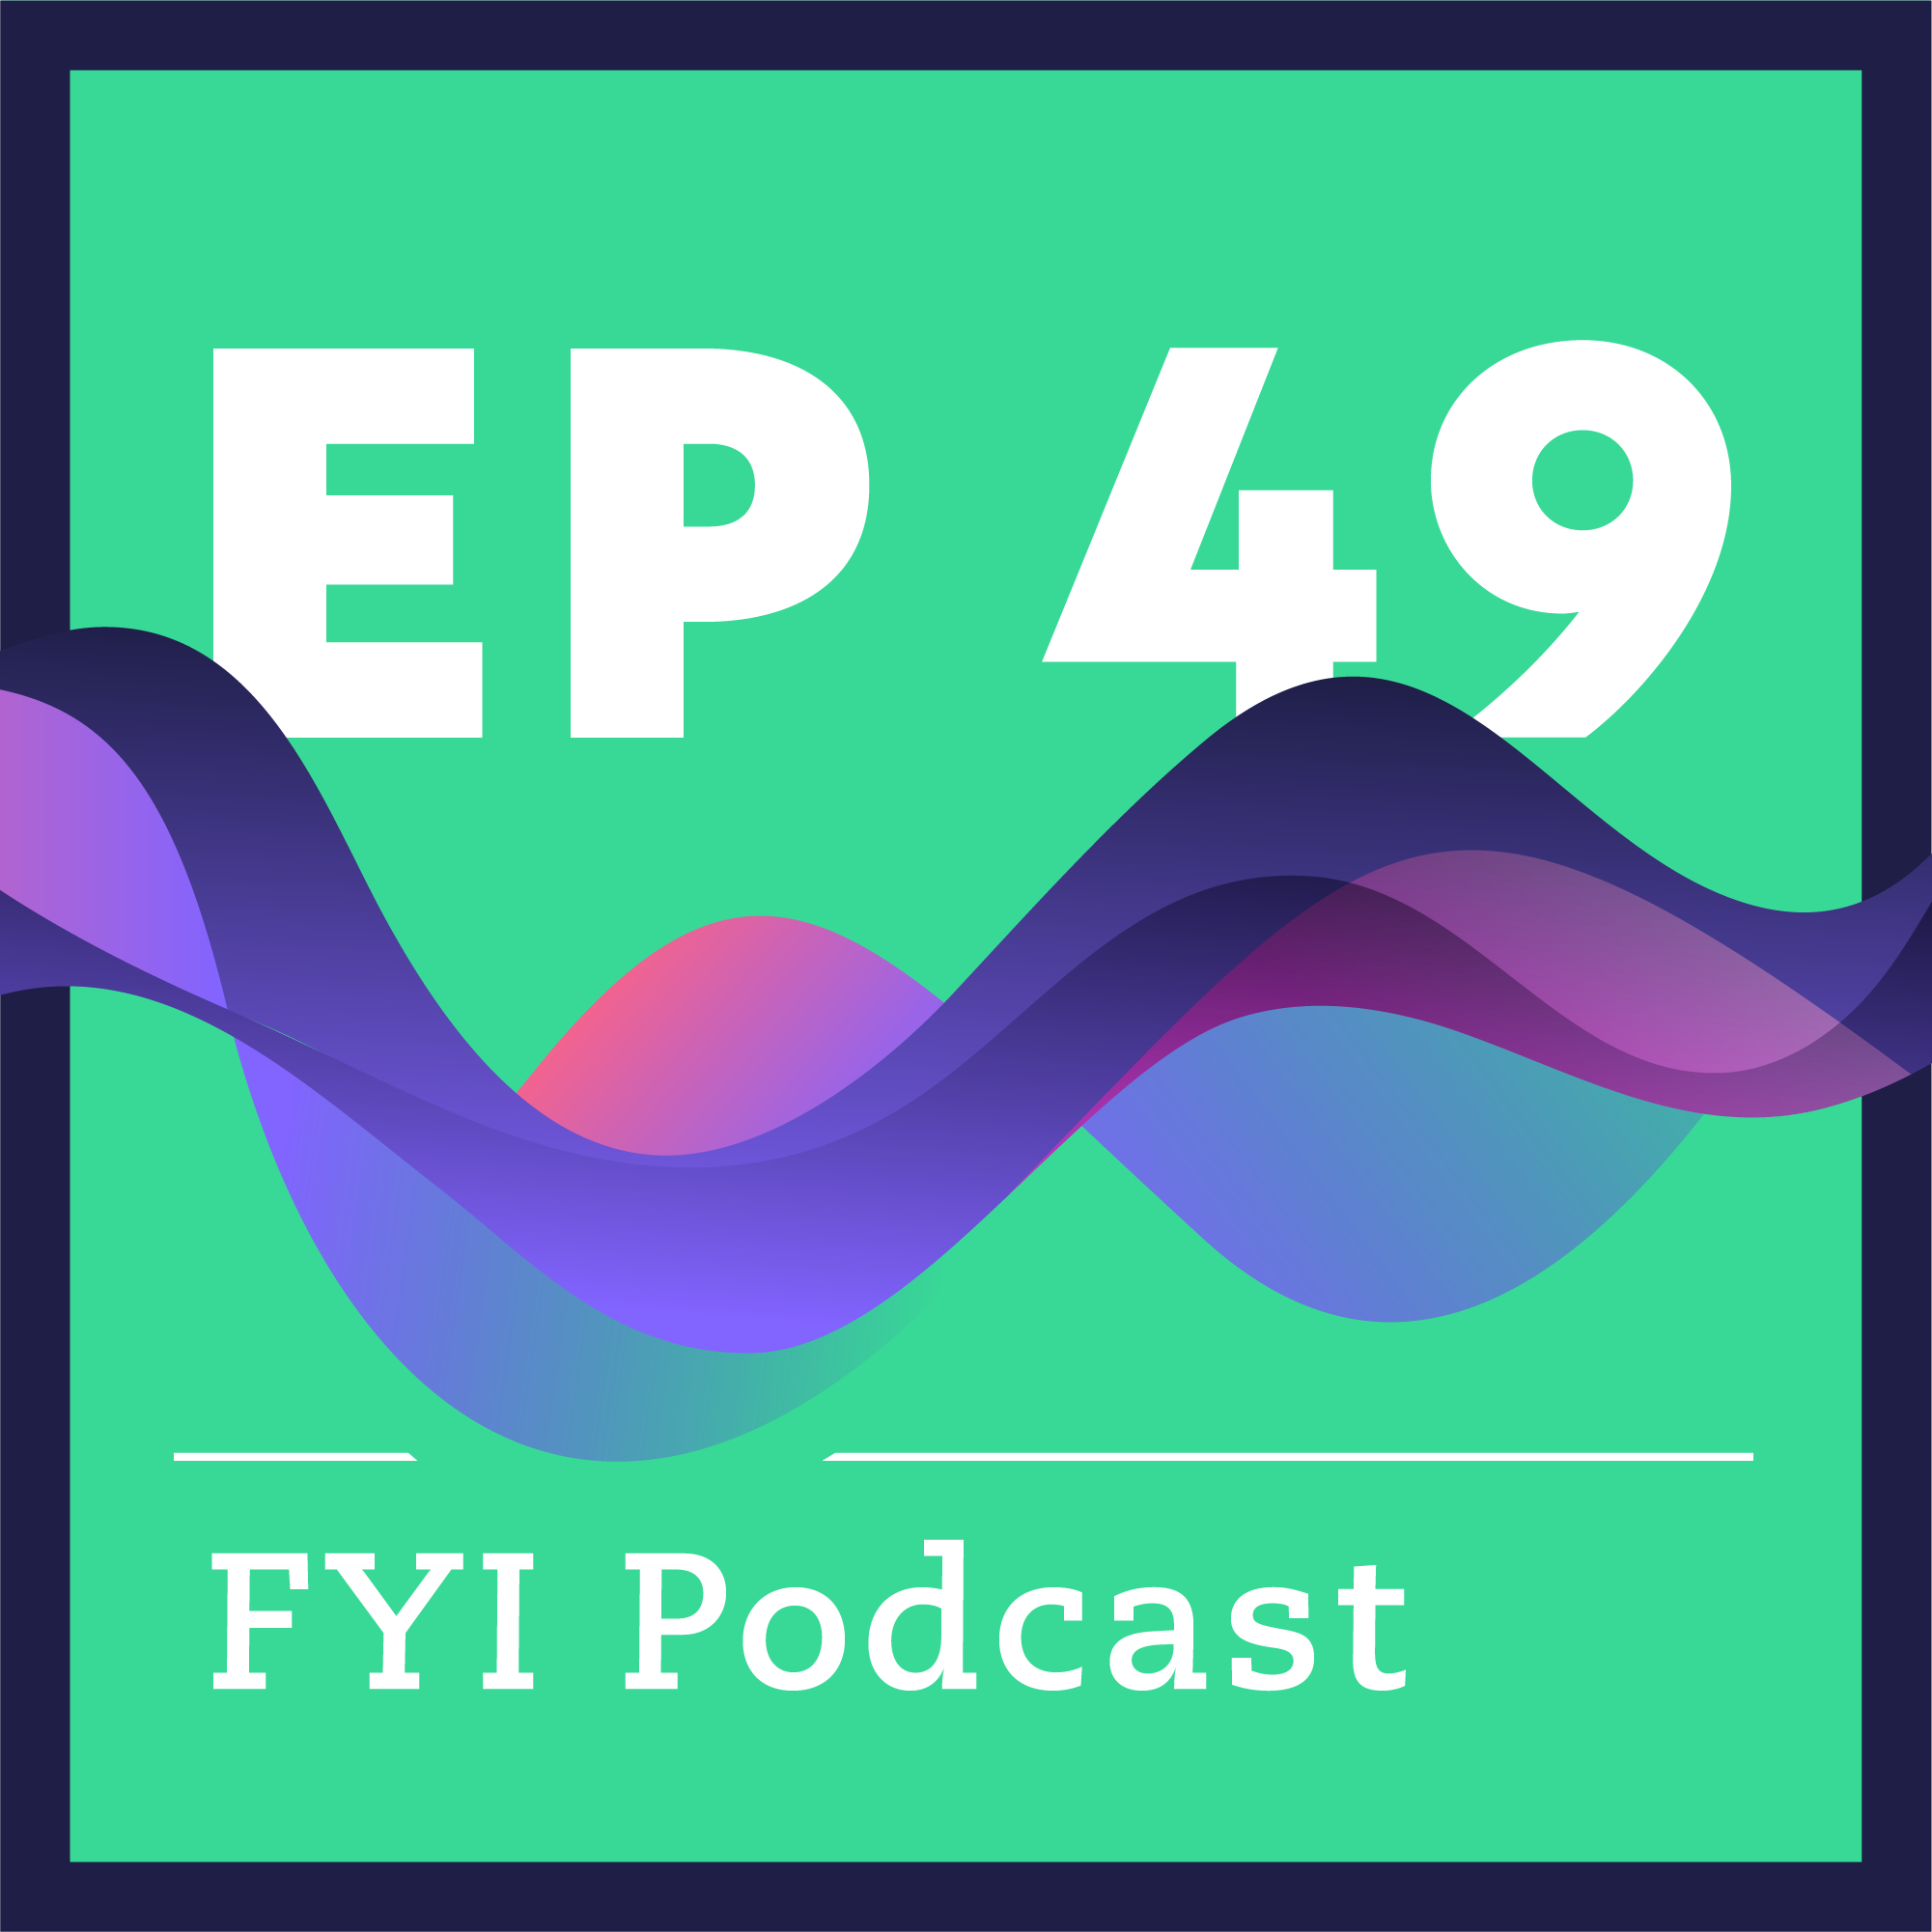 Best of 2019: FYI Podcast with Elon Musk, George Church, and more